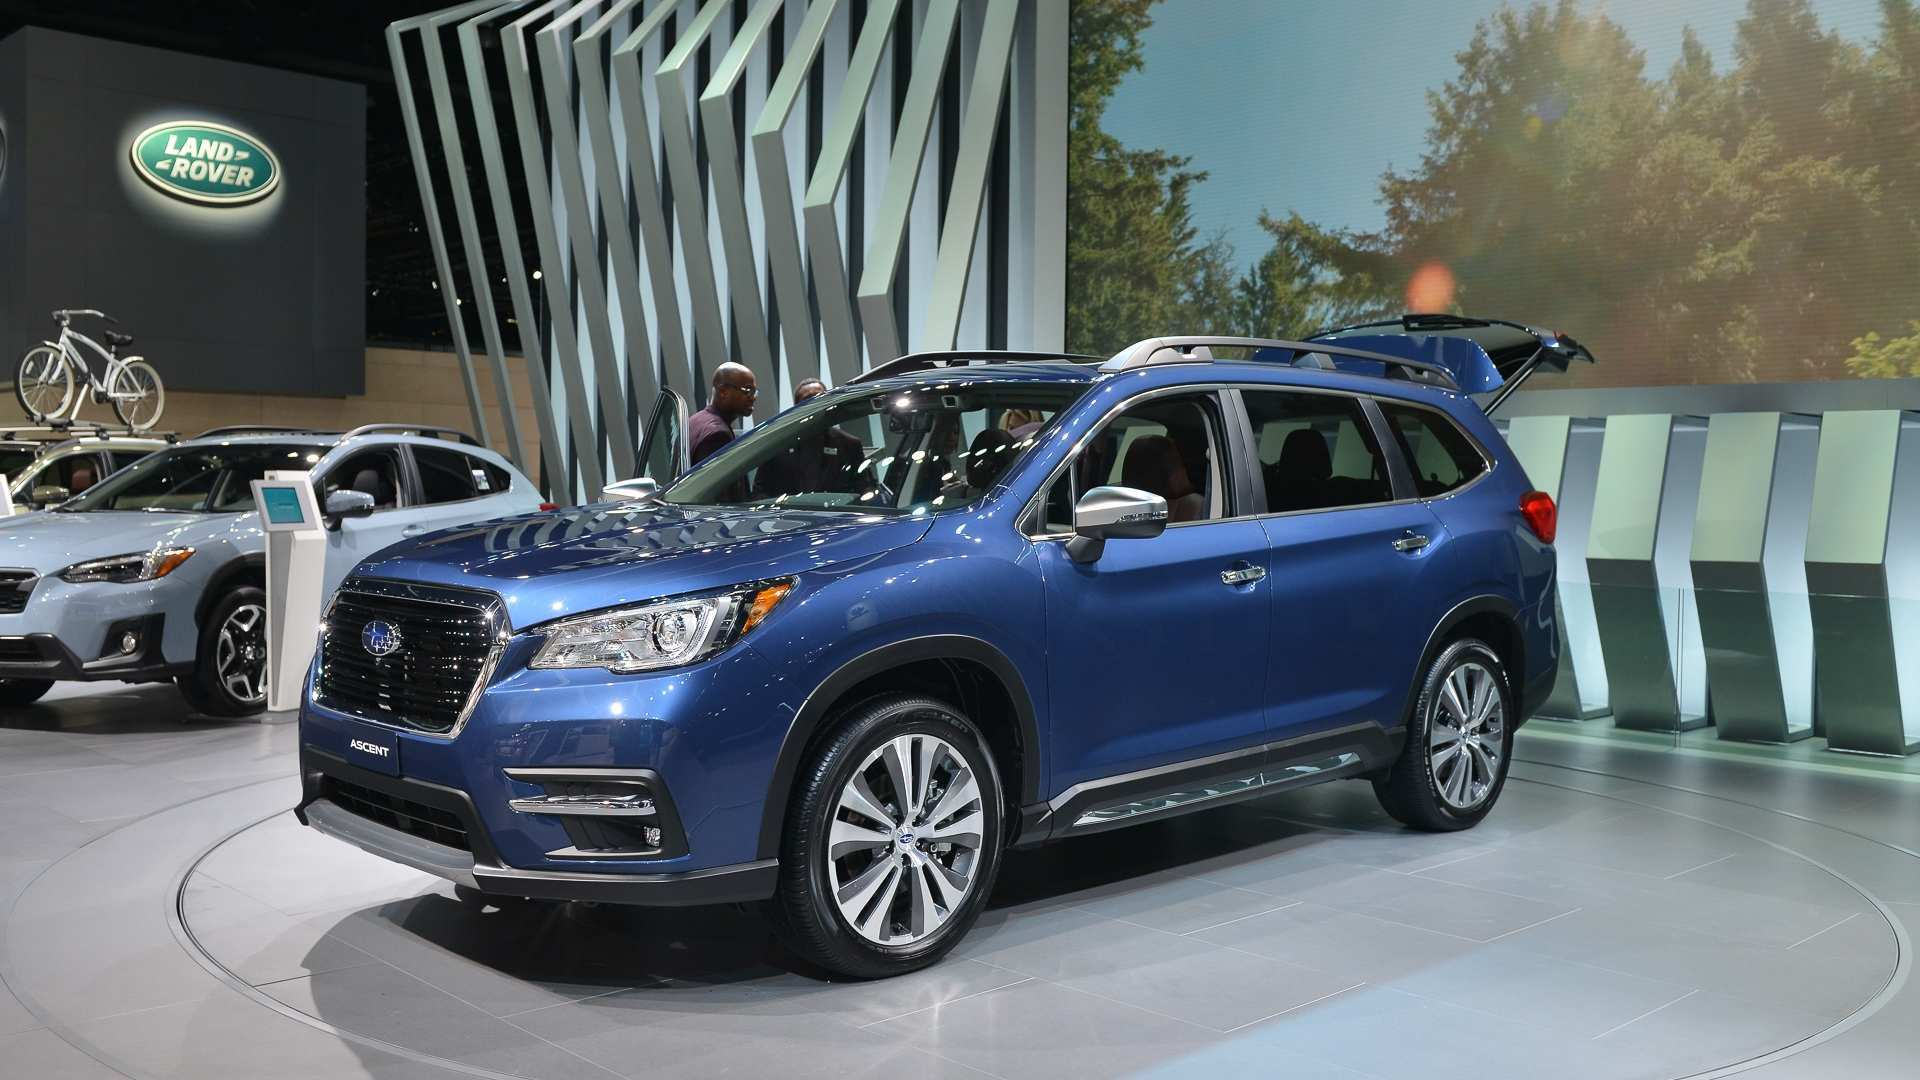 66 All New 2020 Subaru Ascent Ground Clearance Concept for 2020 Subaru Ascent Ground Clearance